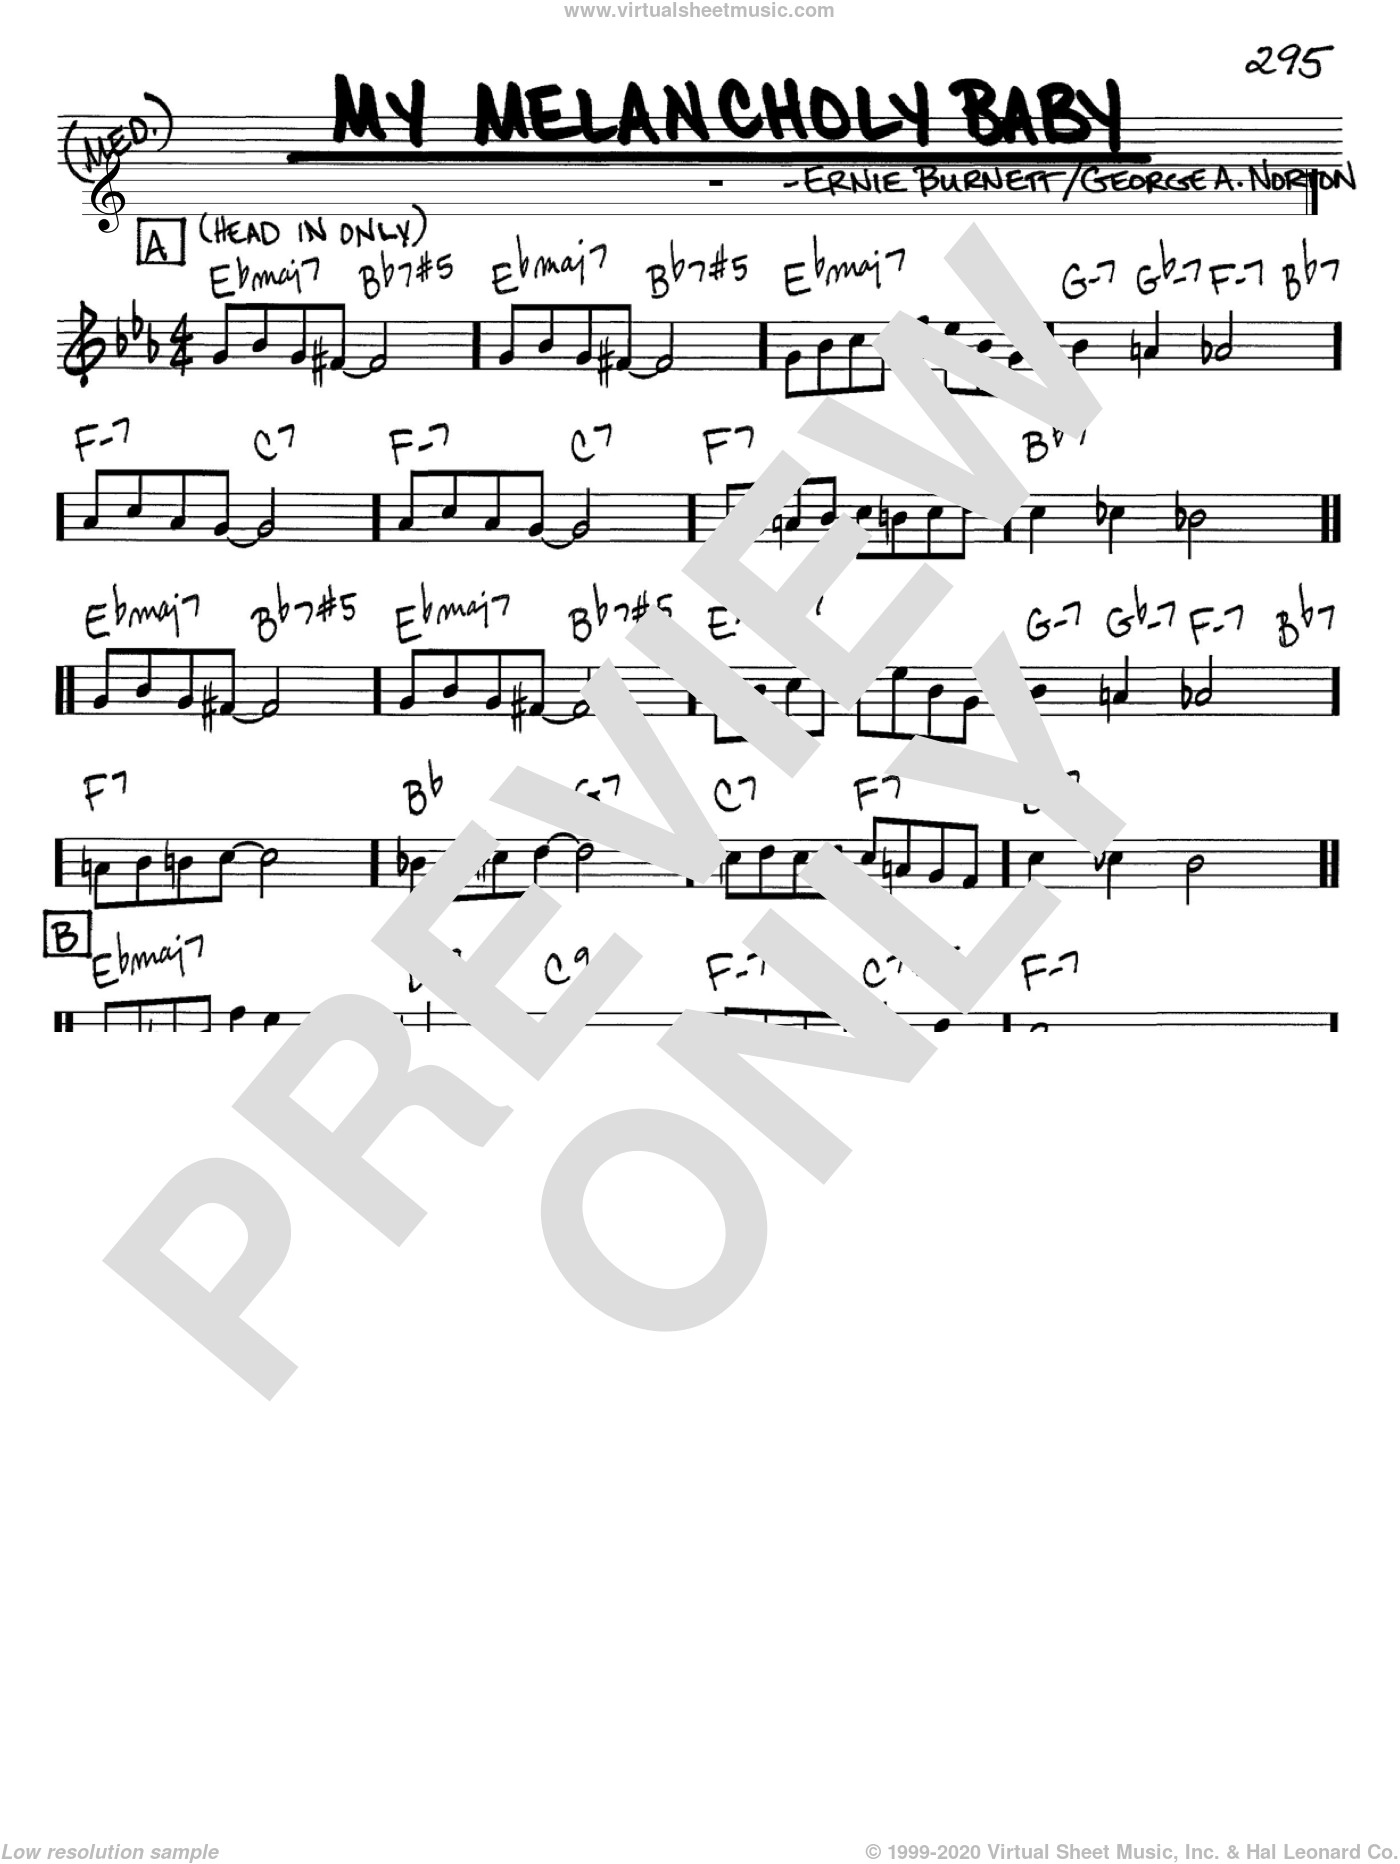 My Melancholy Baby sheet music for voice and other instruments (C) by George A. Norton